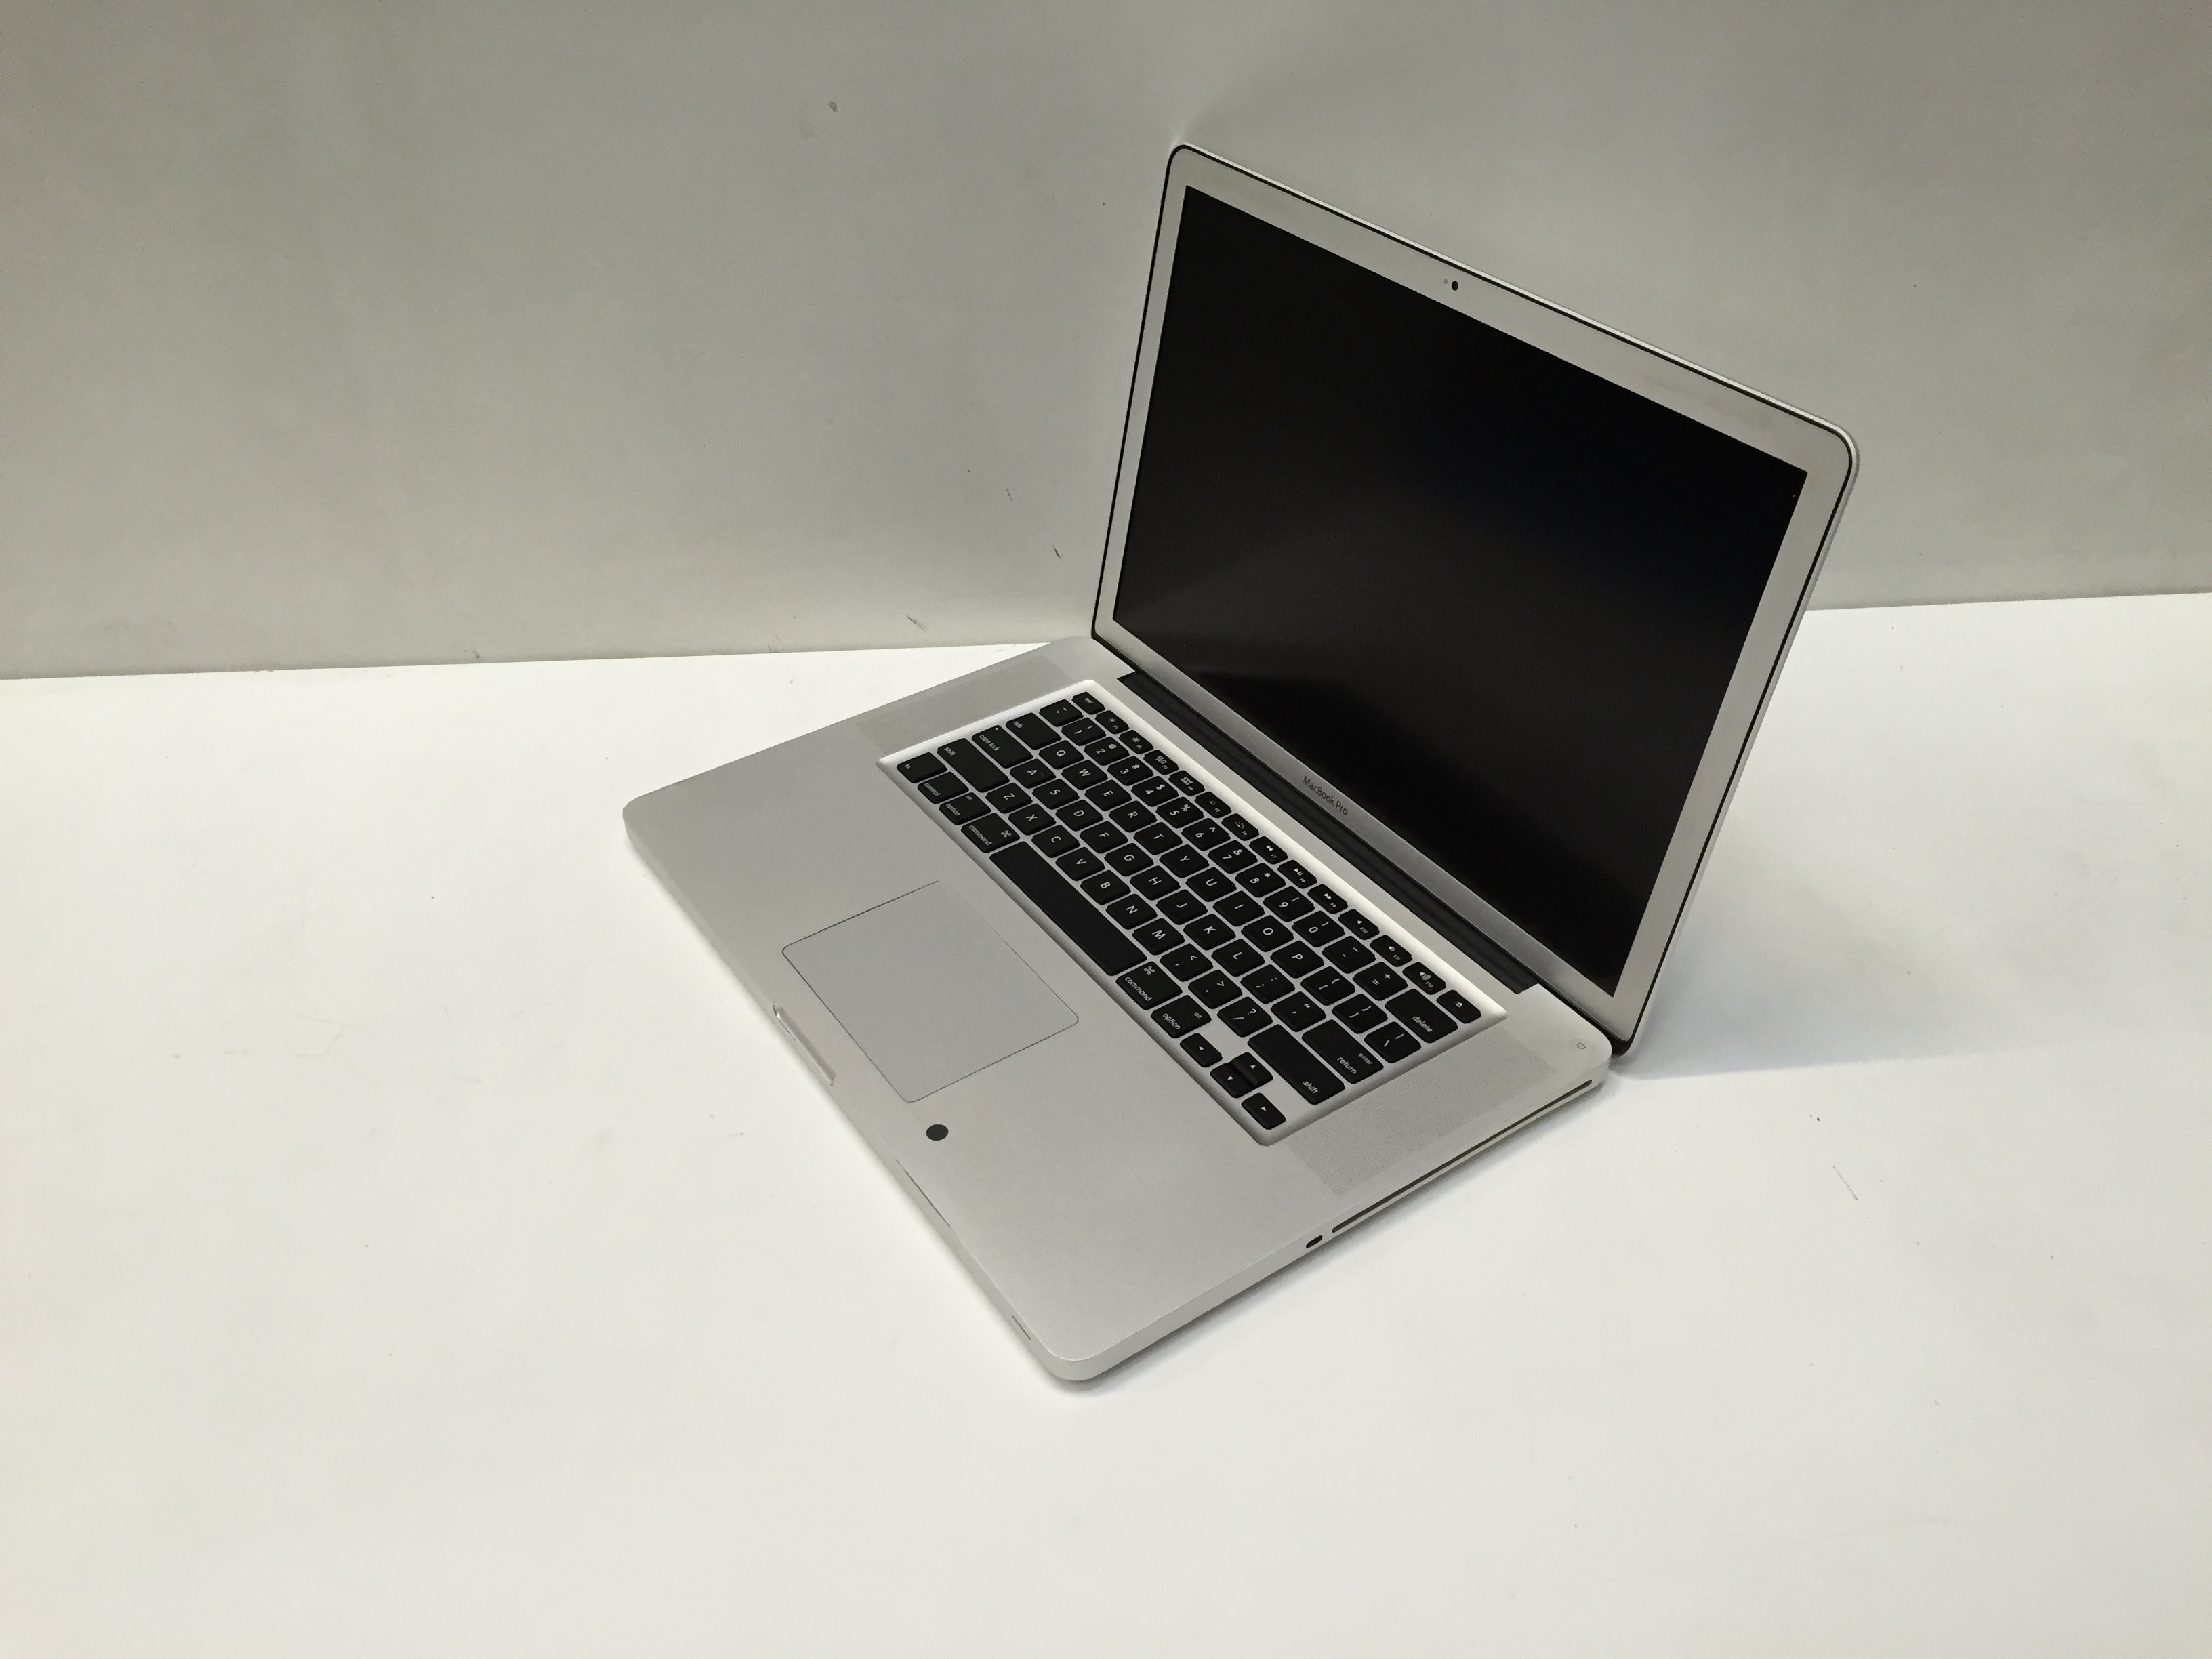 Apple MacBook Pro 15inch Intel Core i7 8GB 750GB HDD MC721B/A A1286